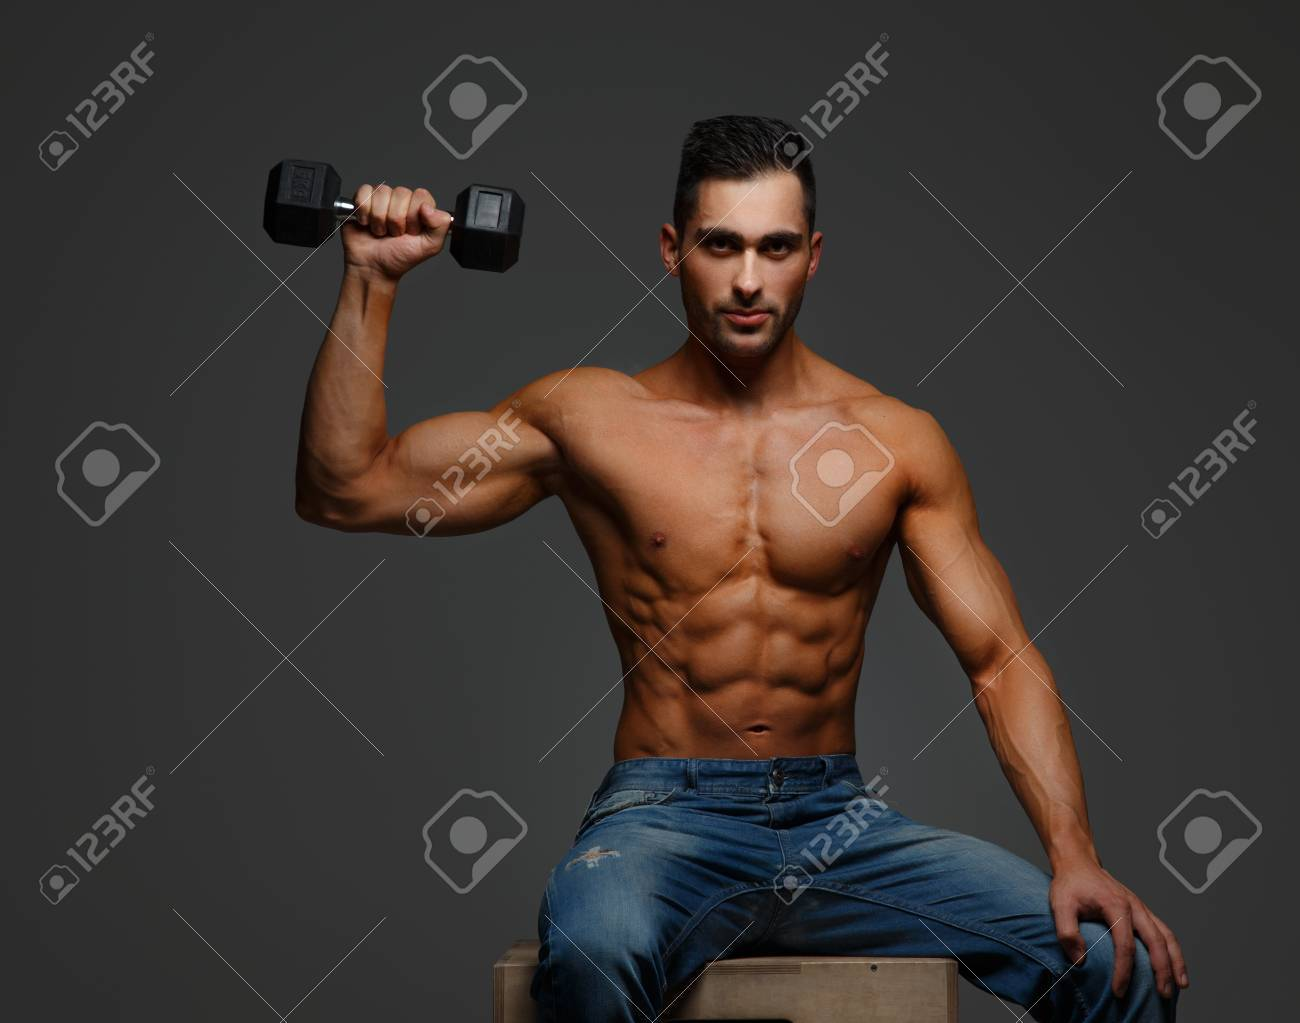 d70a7ddb Shirtless muscular guy in blue jeans holding dumbell. Isolated on grey  background Stock Photo -